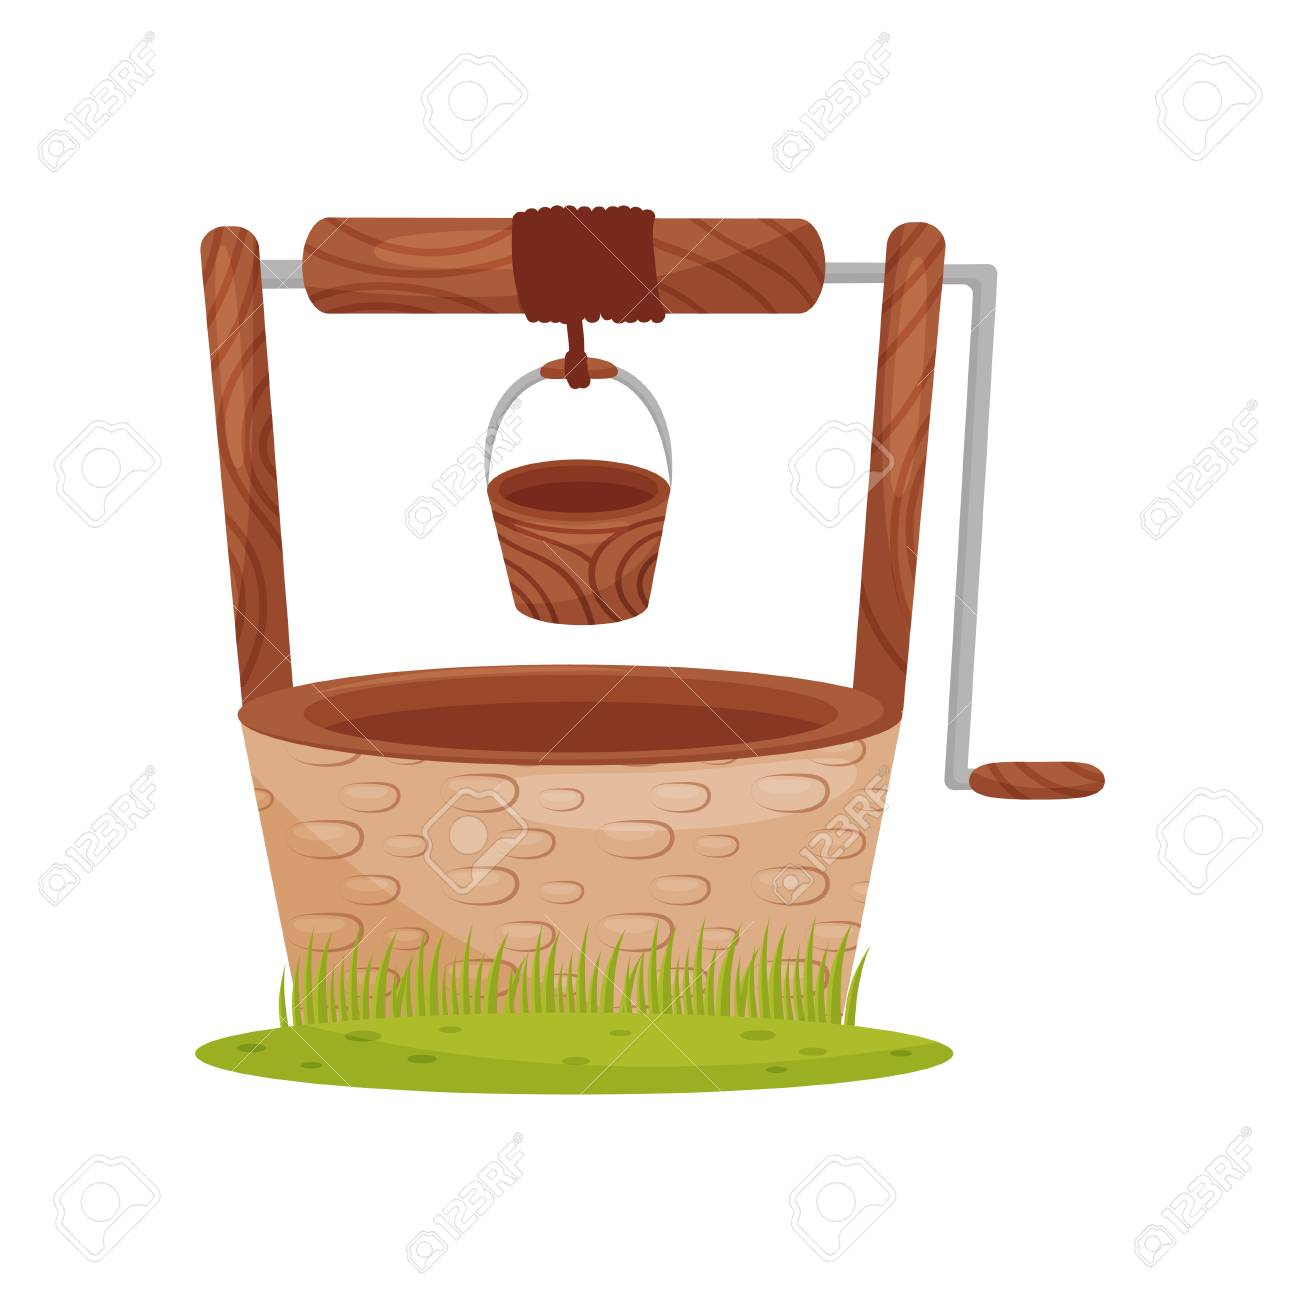 Old stone water well, wooden bucket hangs on rope. Element for rural landscape. Farm theme. Graphic design for children book. Colorful vector illustration in flat style isolated on white background. - 126349979